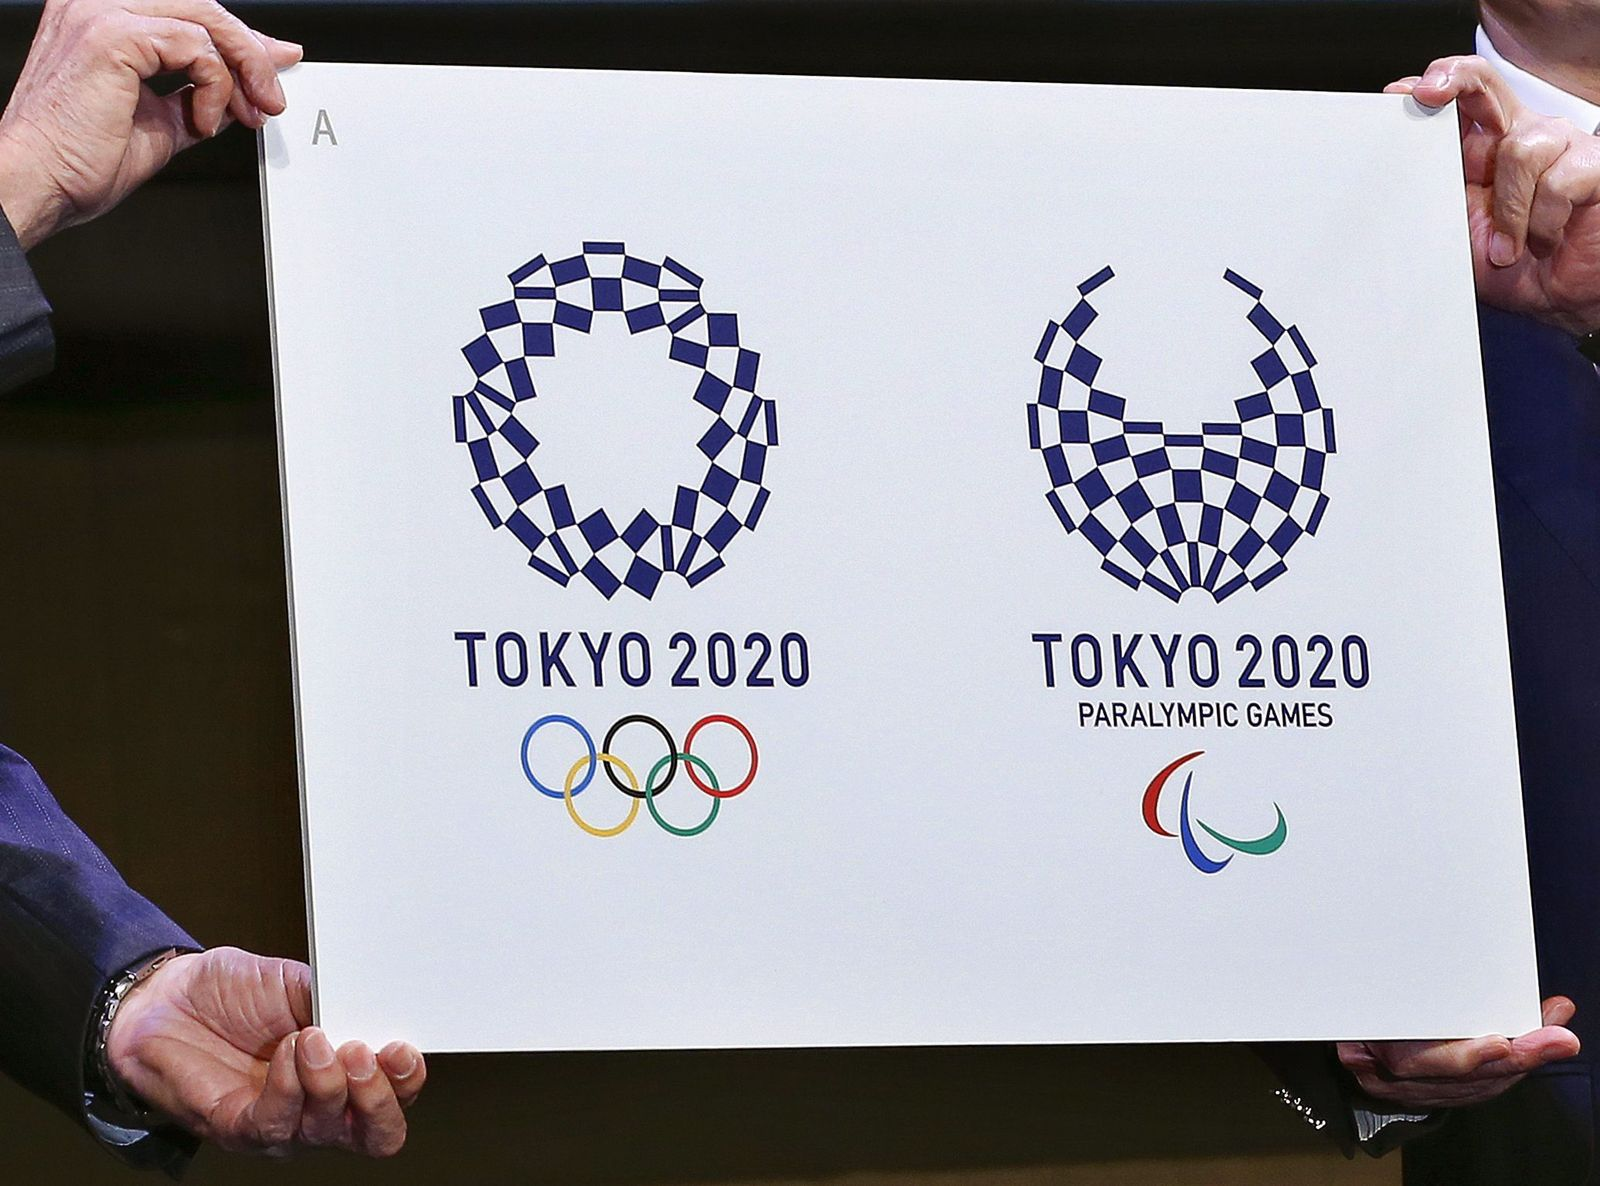 Tokyo 2020 Olympic Games corruption claims